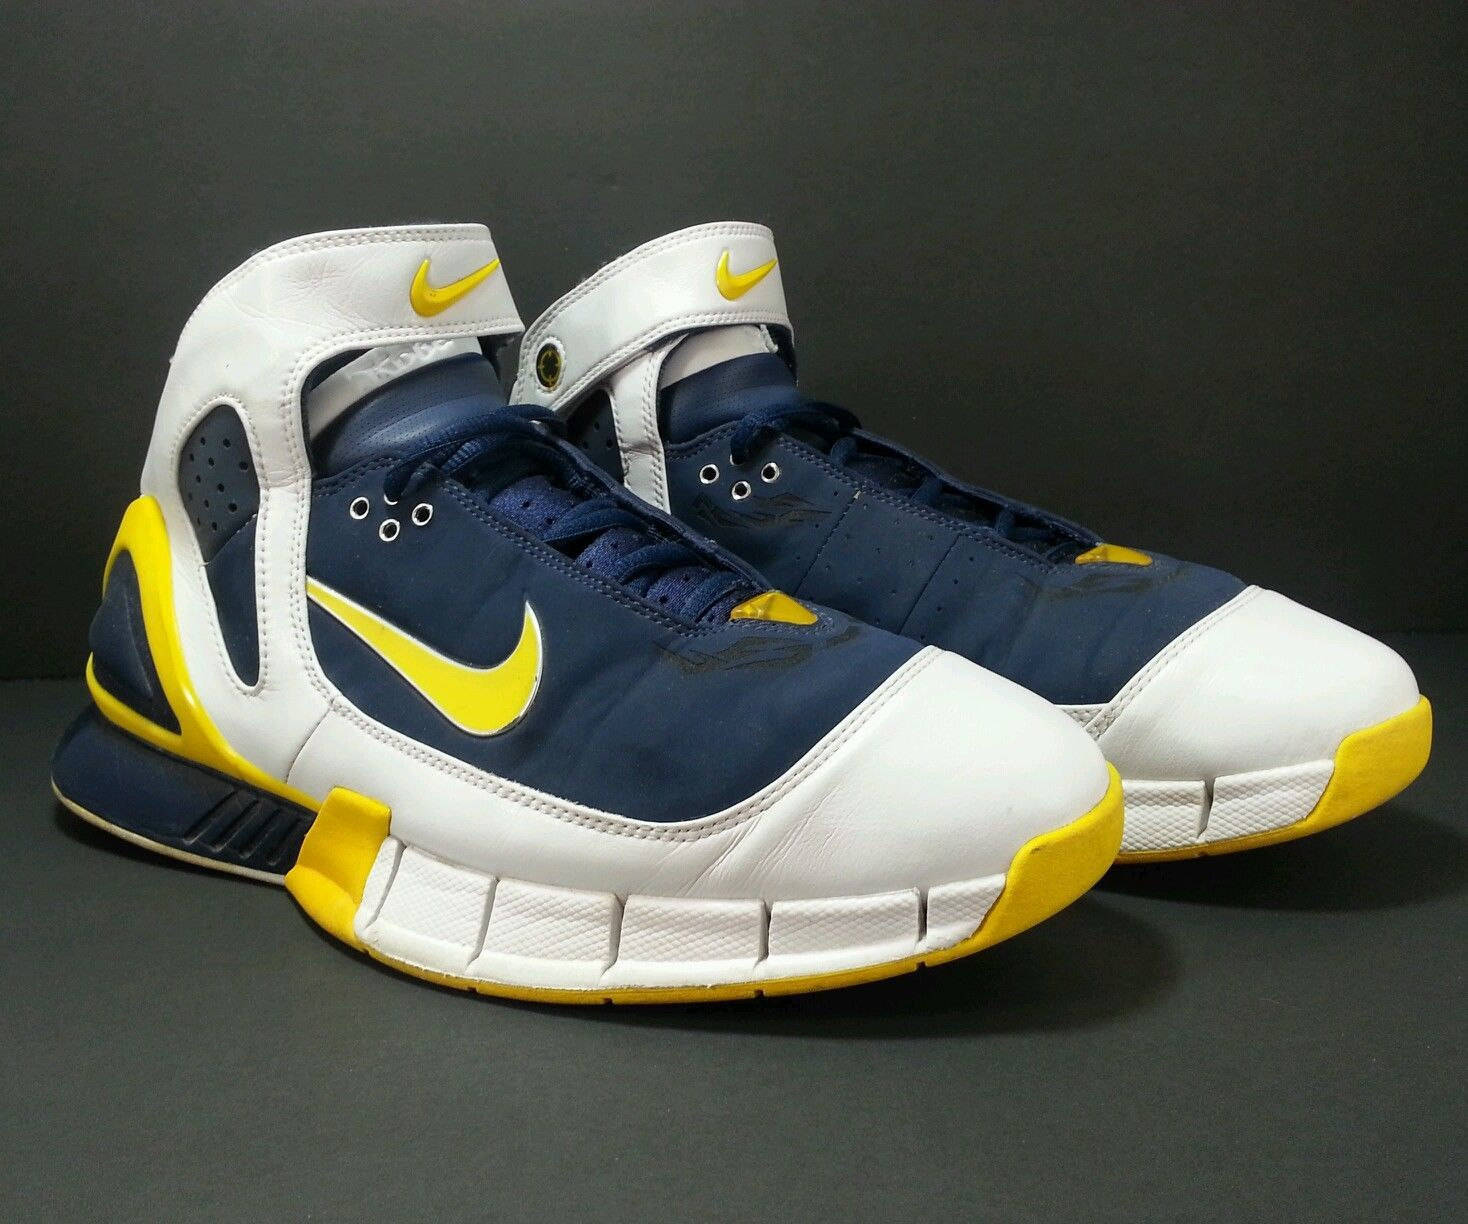 nike zoom kobe basketball shoes latest nike basketball shoes